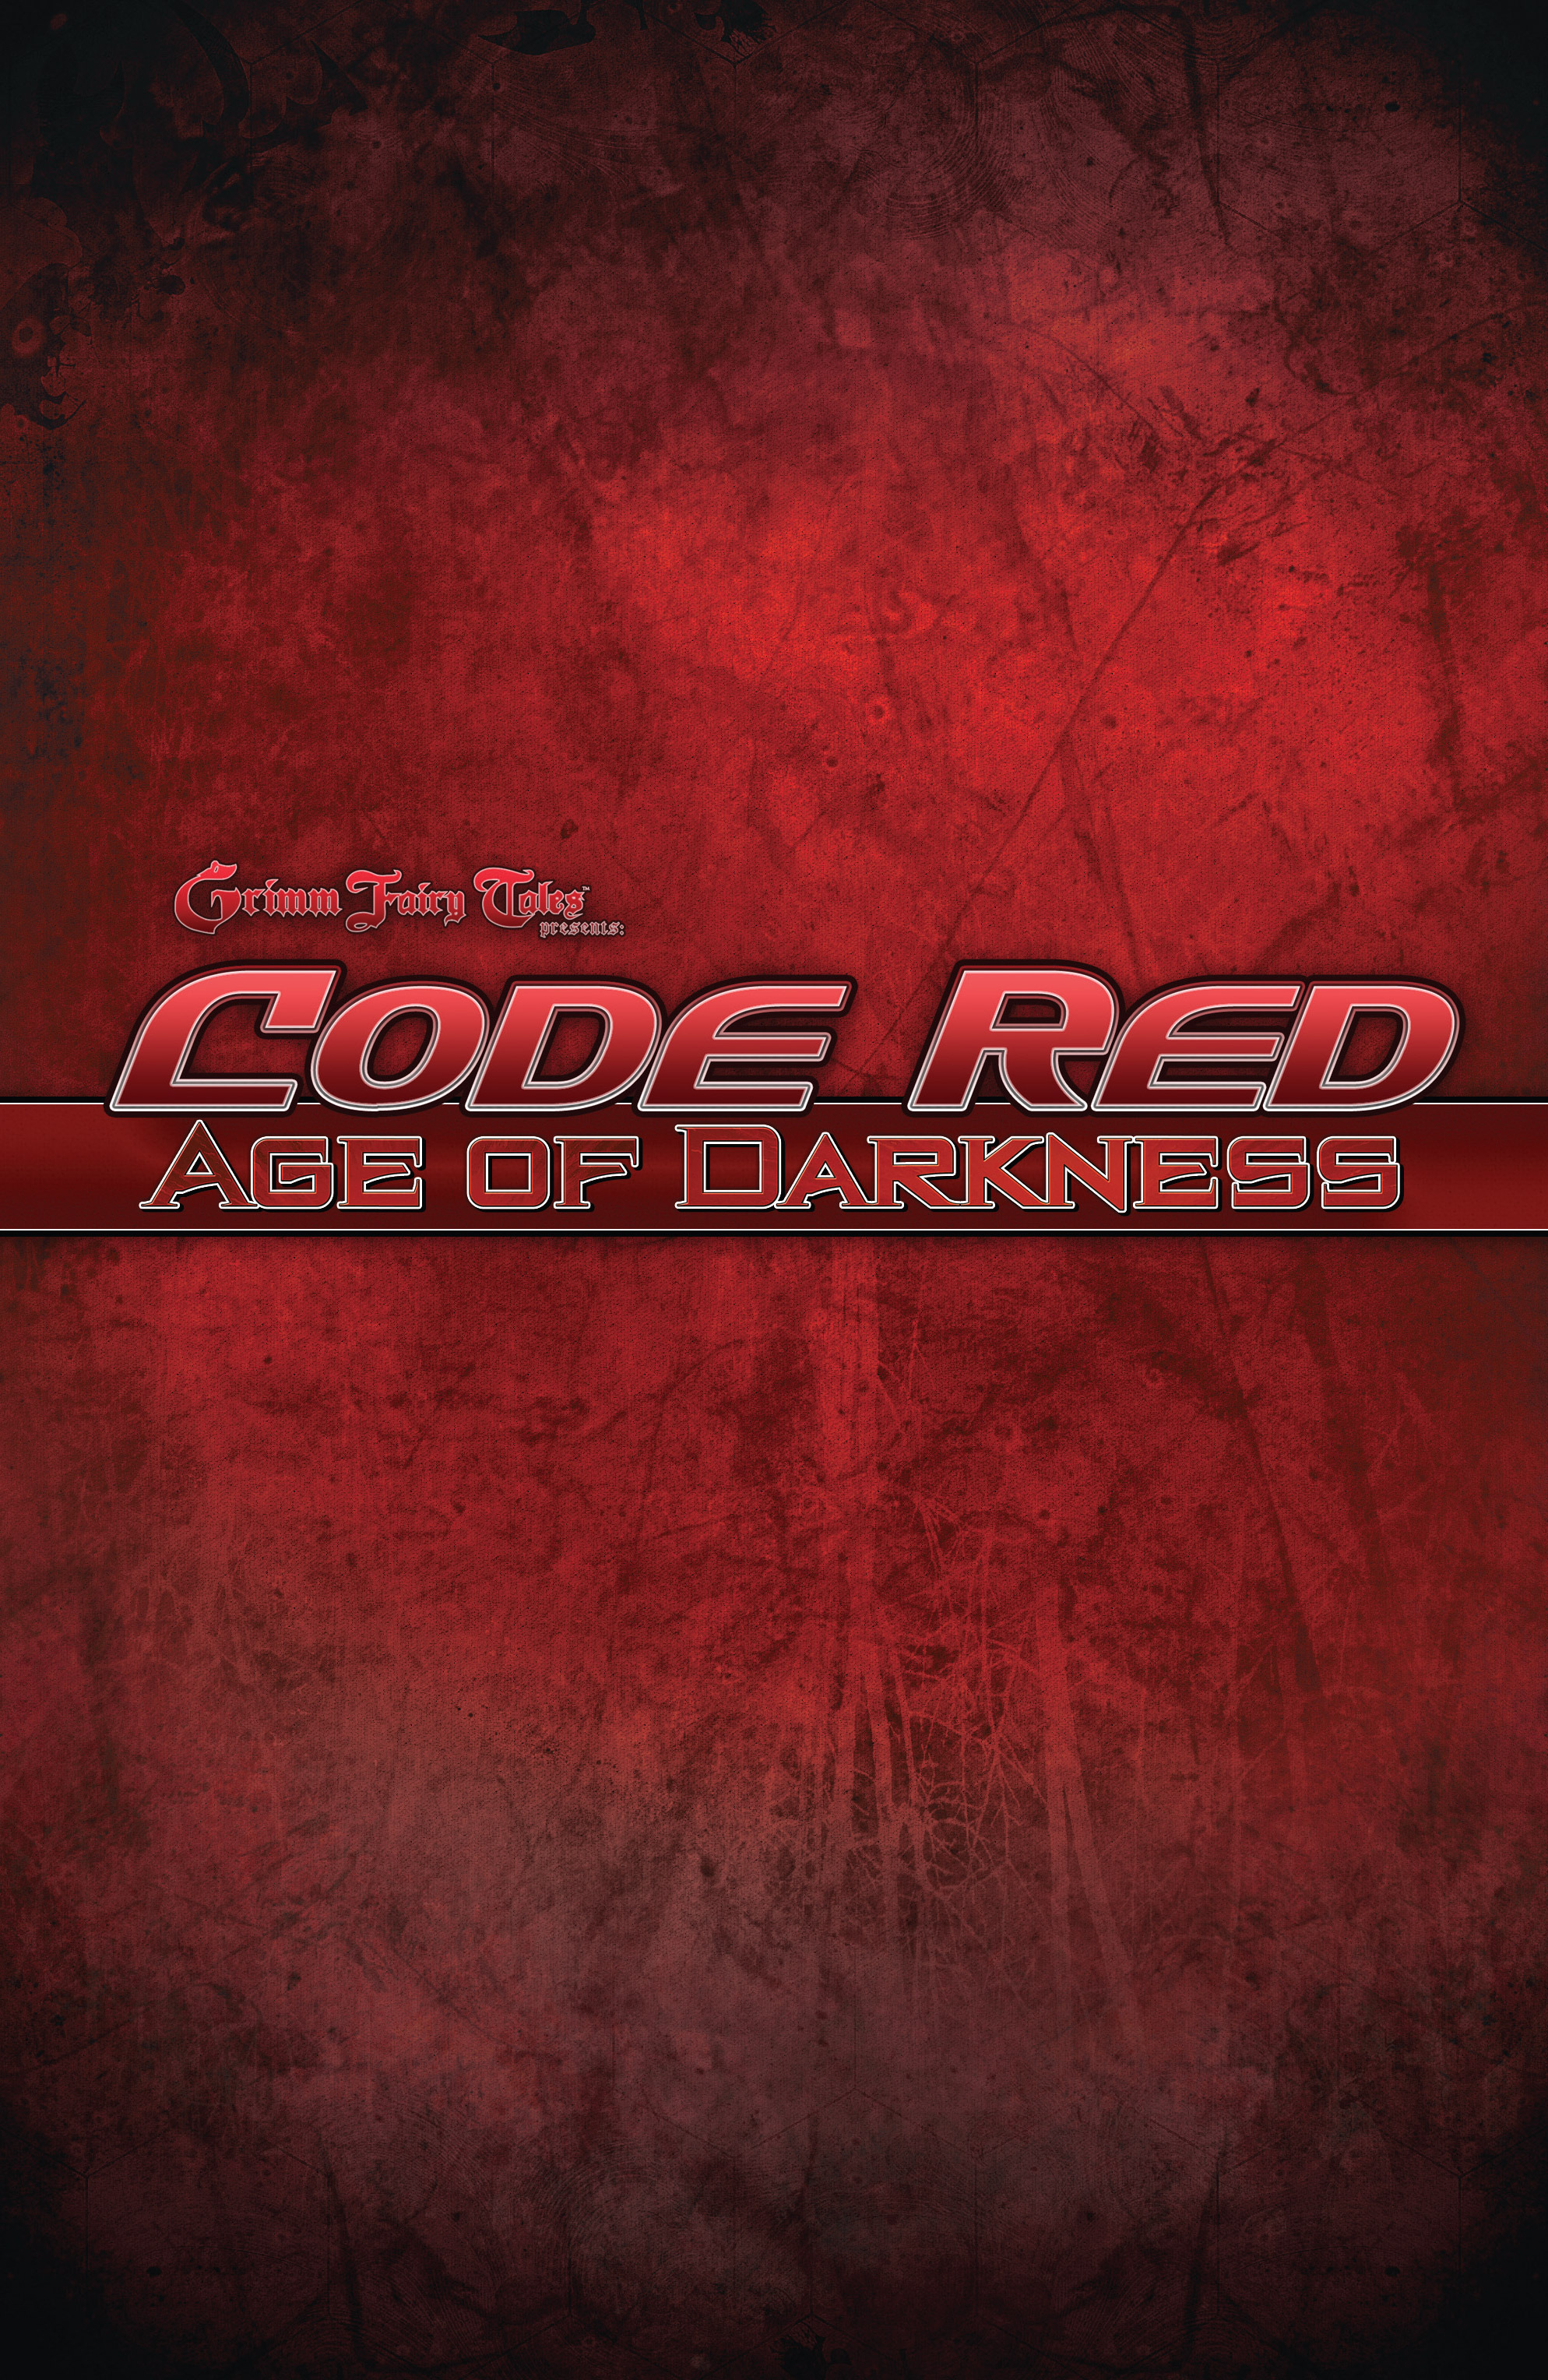 Read online Grimm Fairy Tales presents Code Red comic -  Issue # TPB - 4